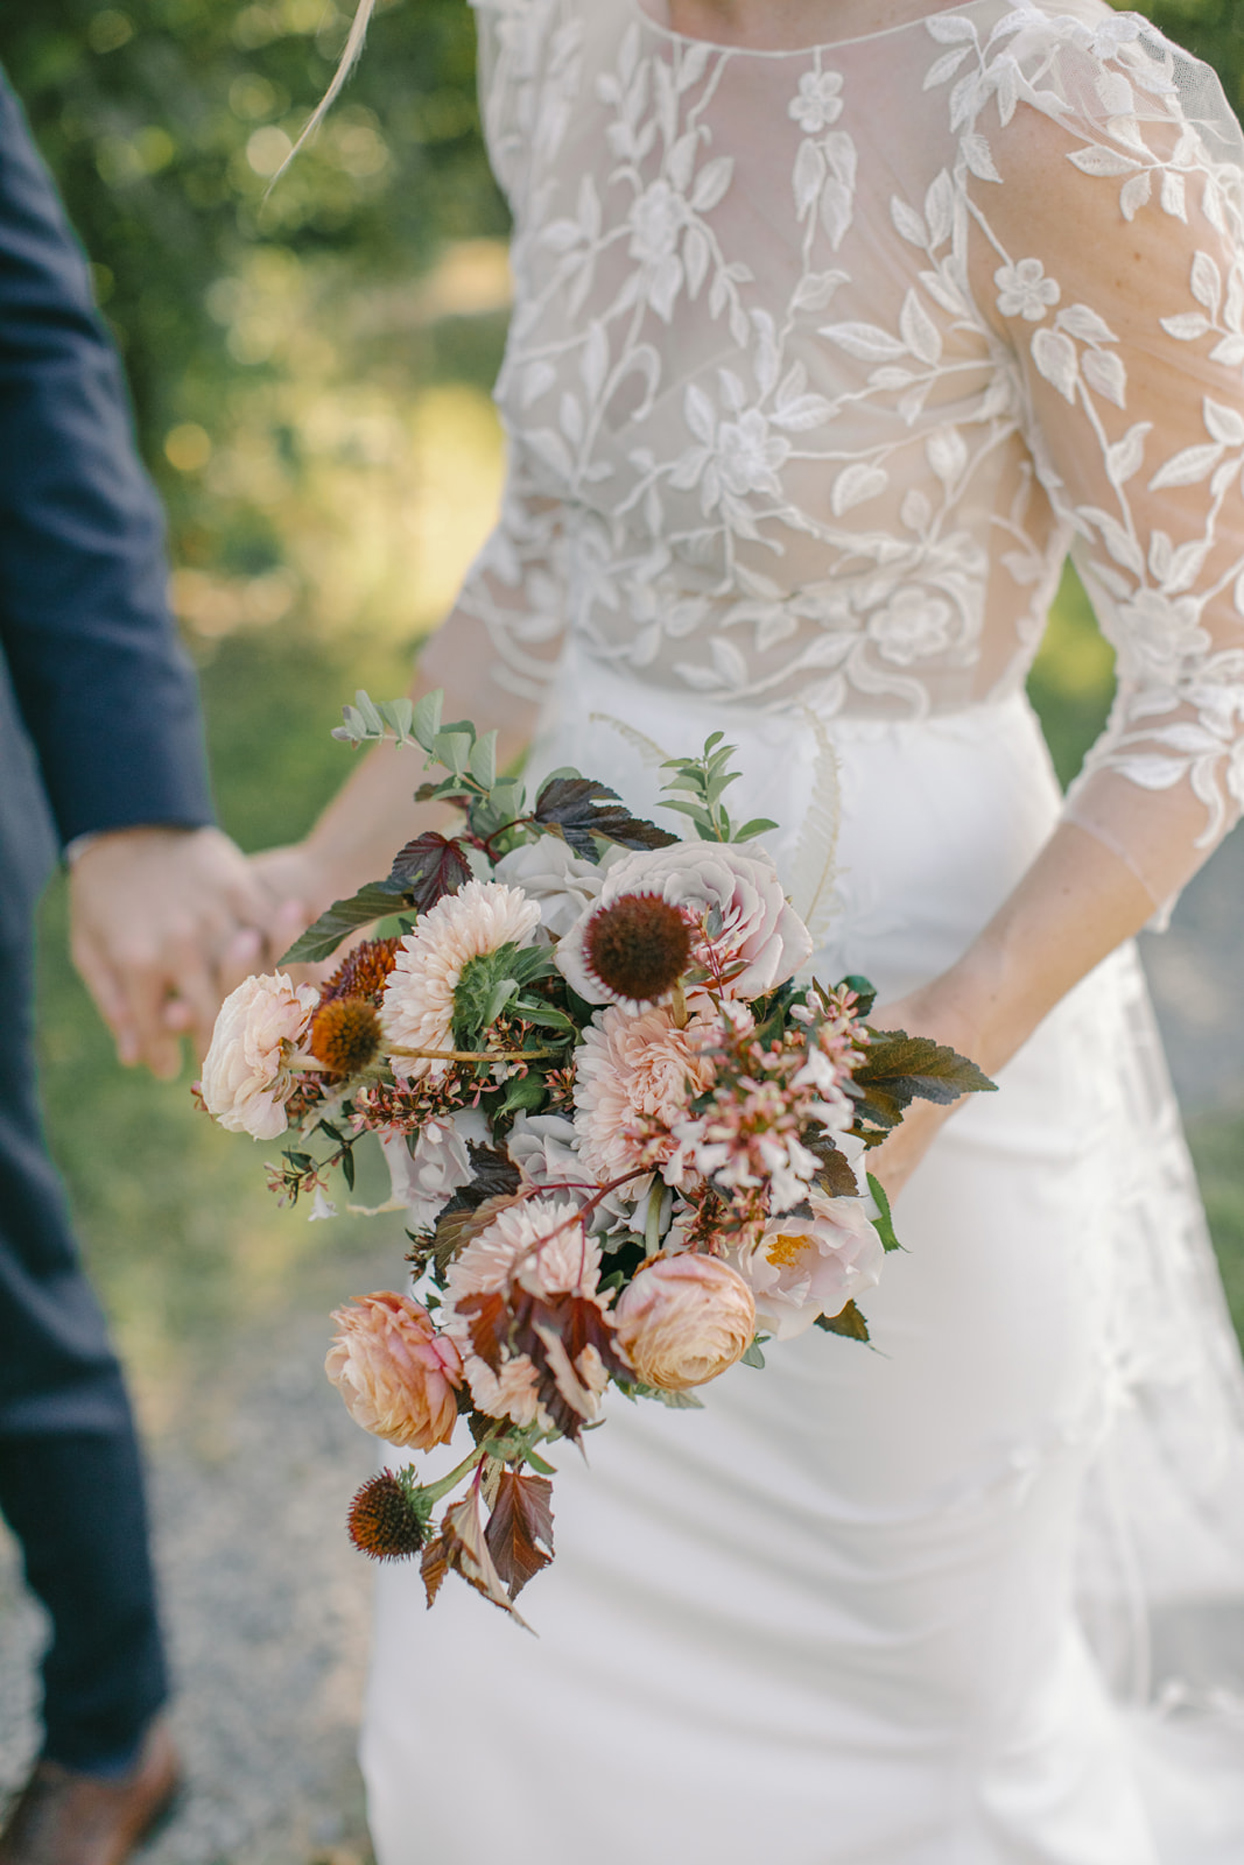 bride's bouquet with garden roses and greenery